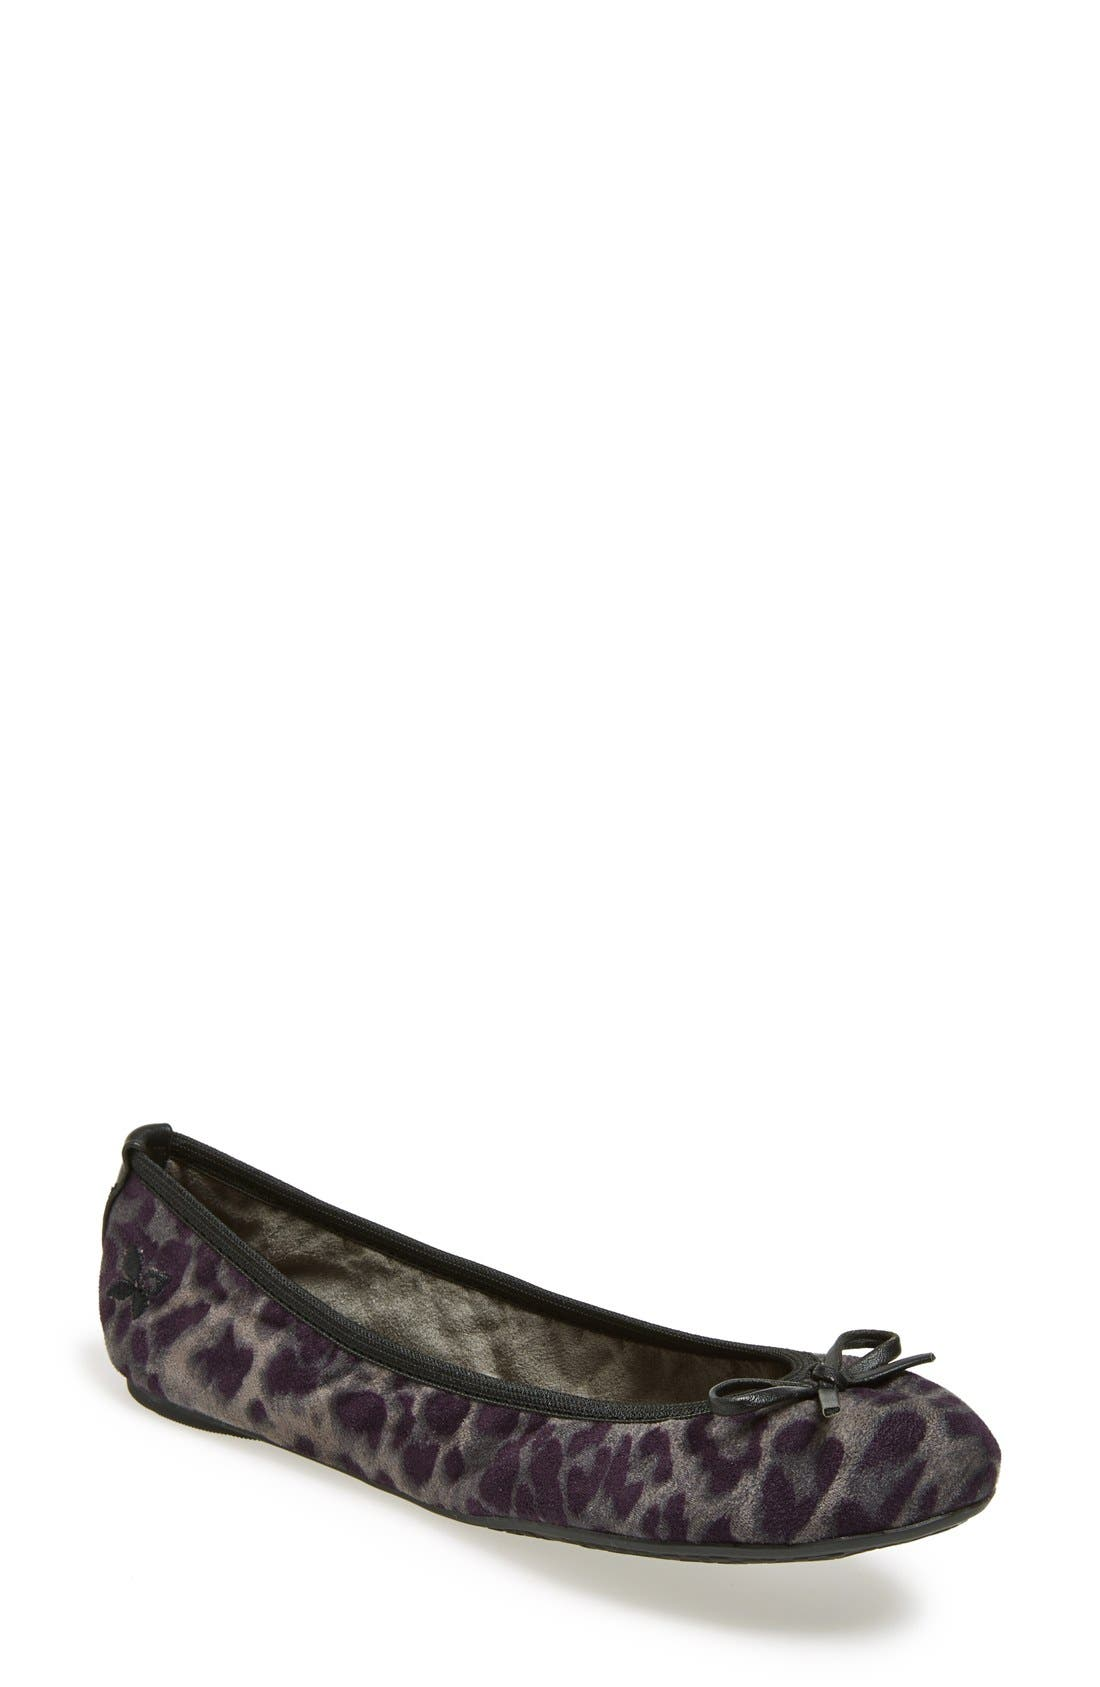 BUTTERFLY TWISTS 'Cleo Leopard' Foldable Ballerina Flat, Main, color, 020